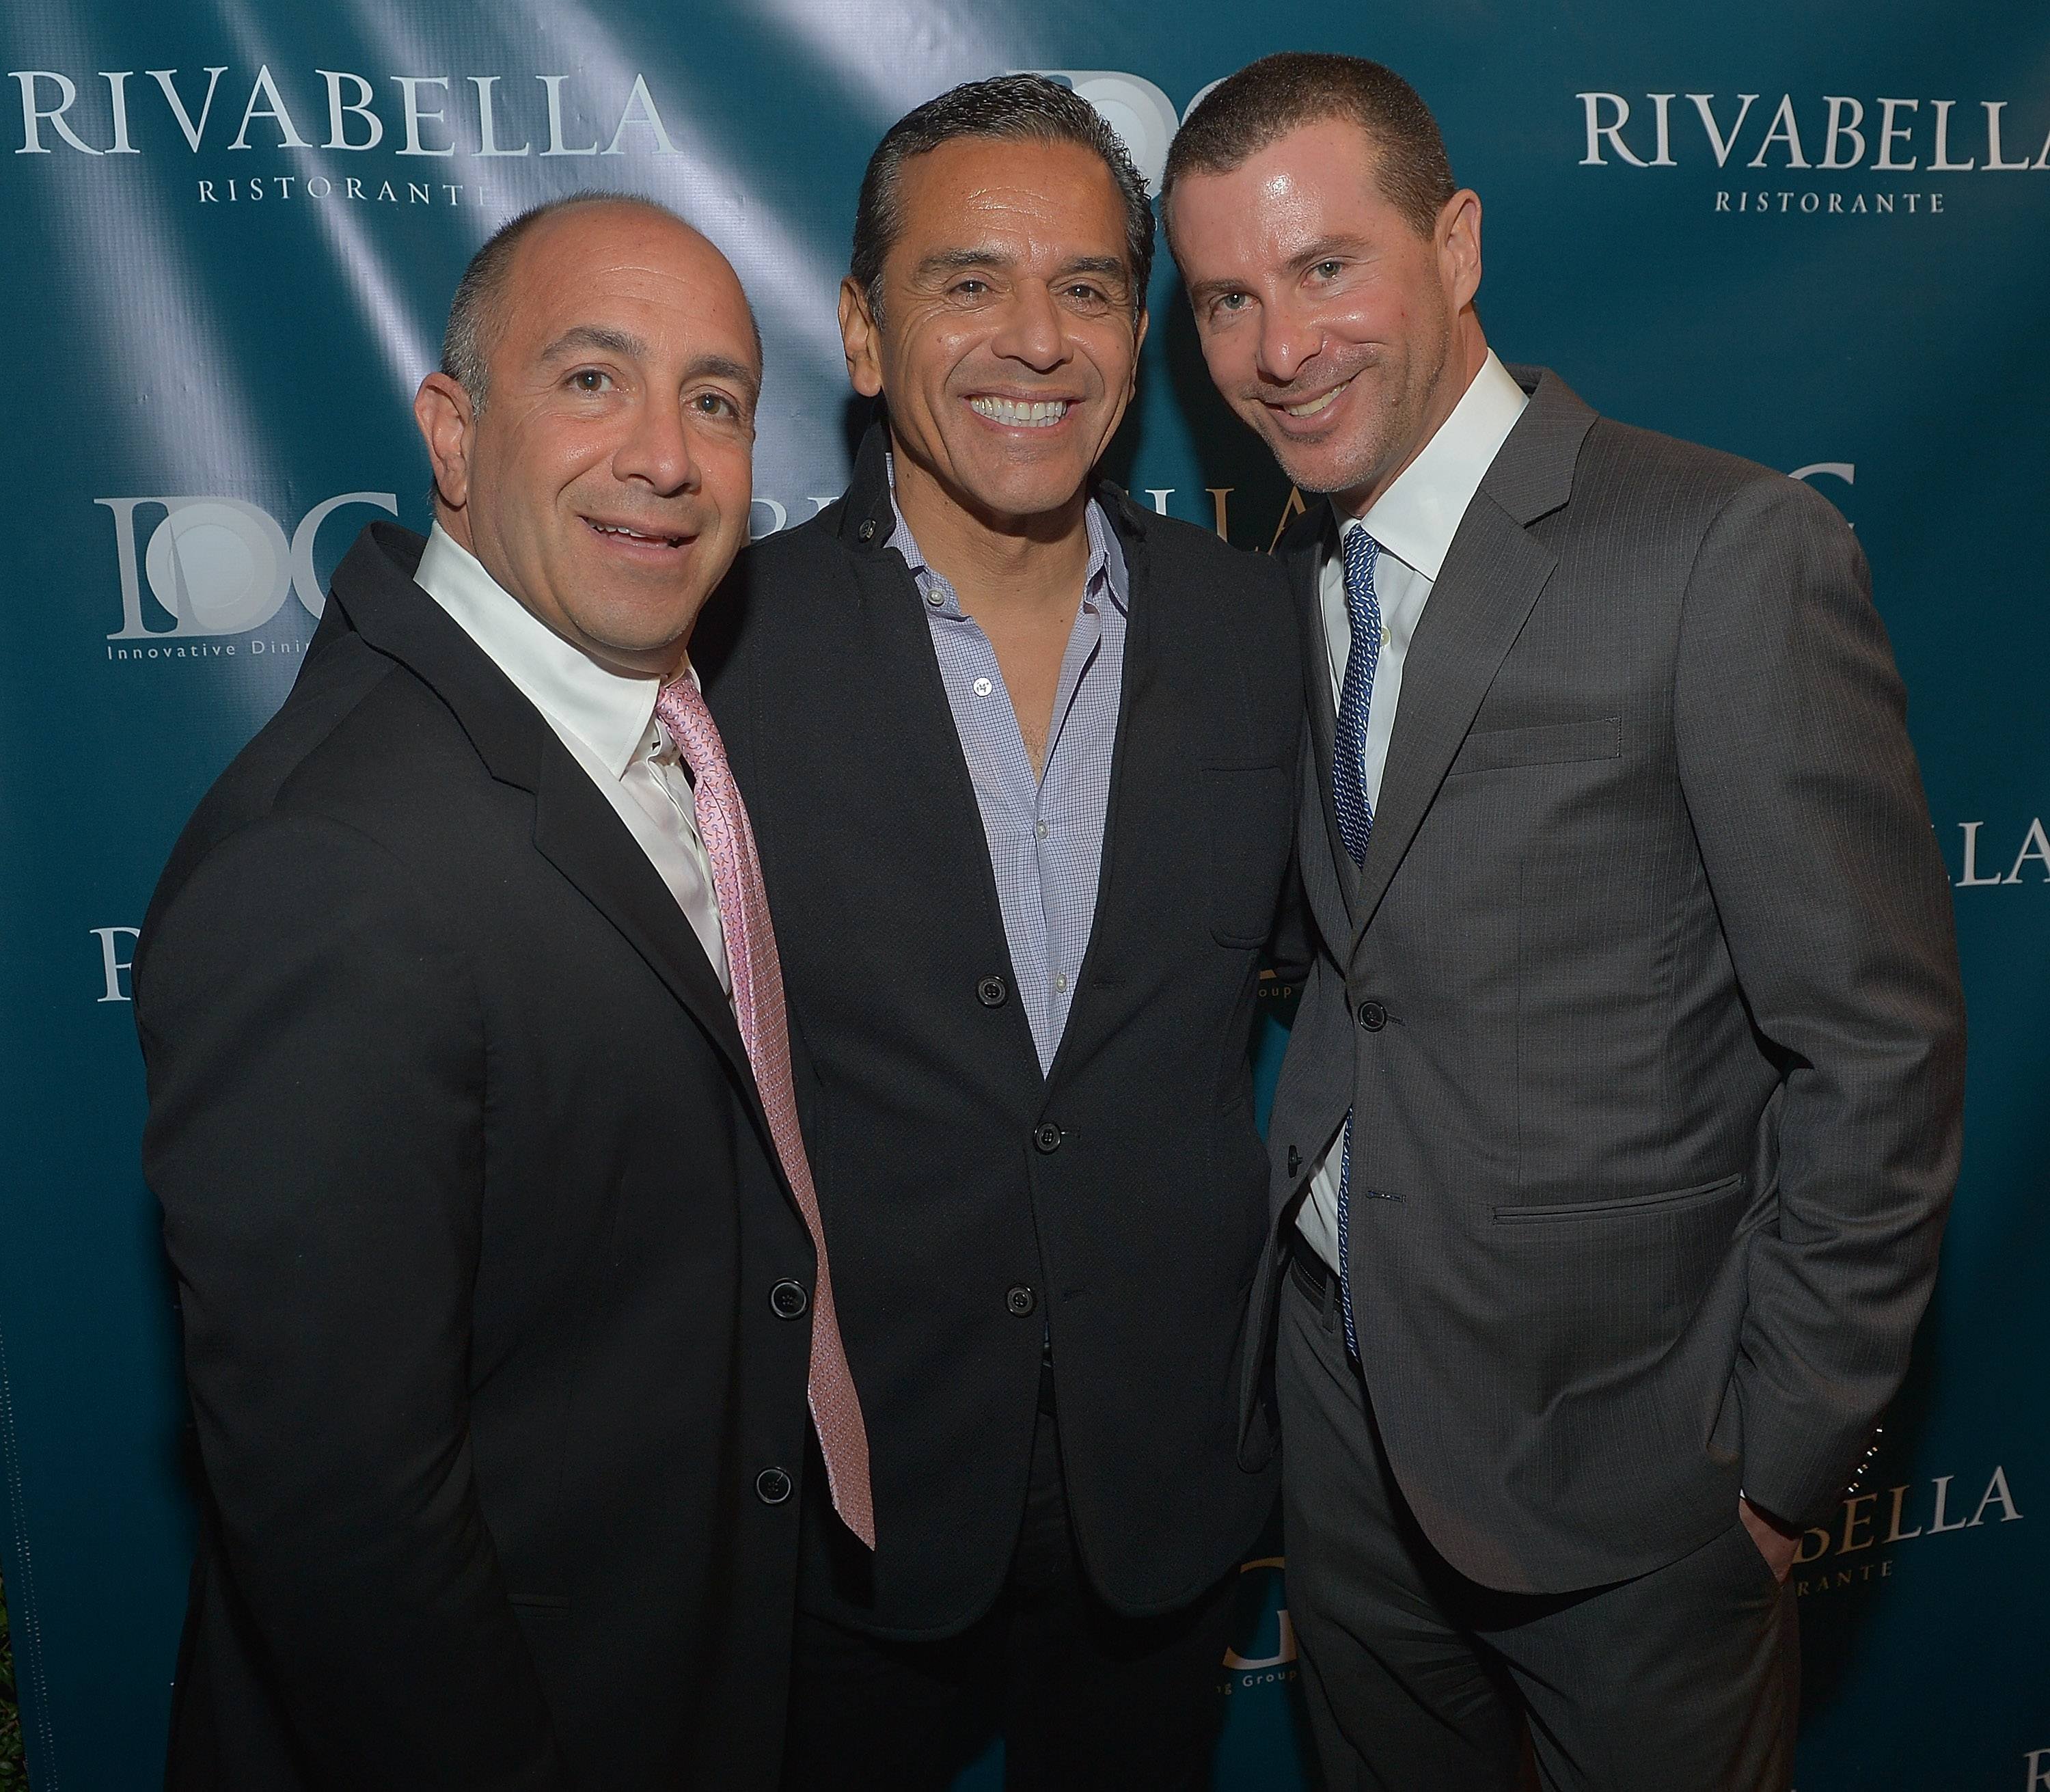 Grand  Opening Of RivaBella Ristorante In West Hollywood